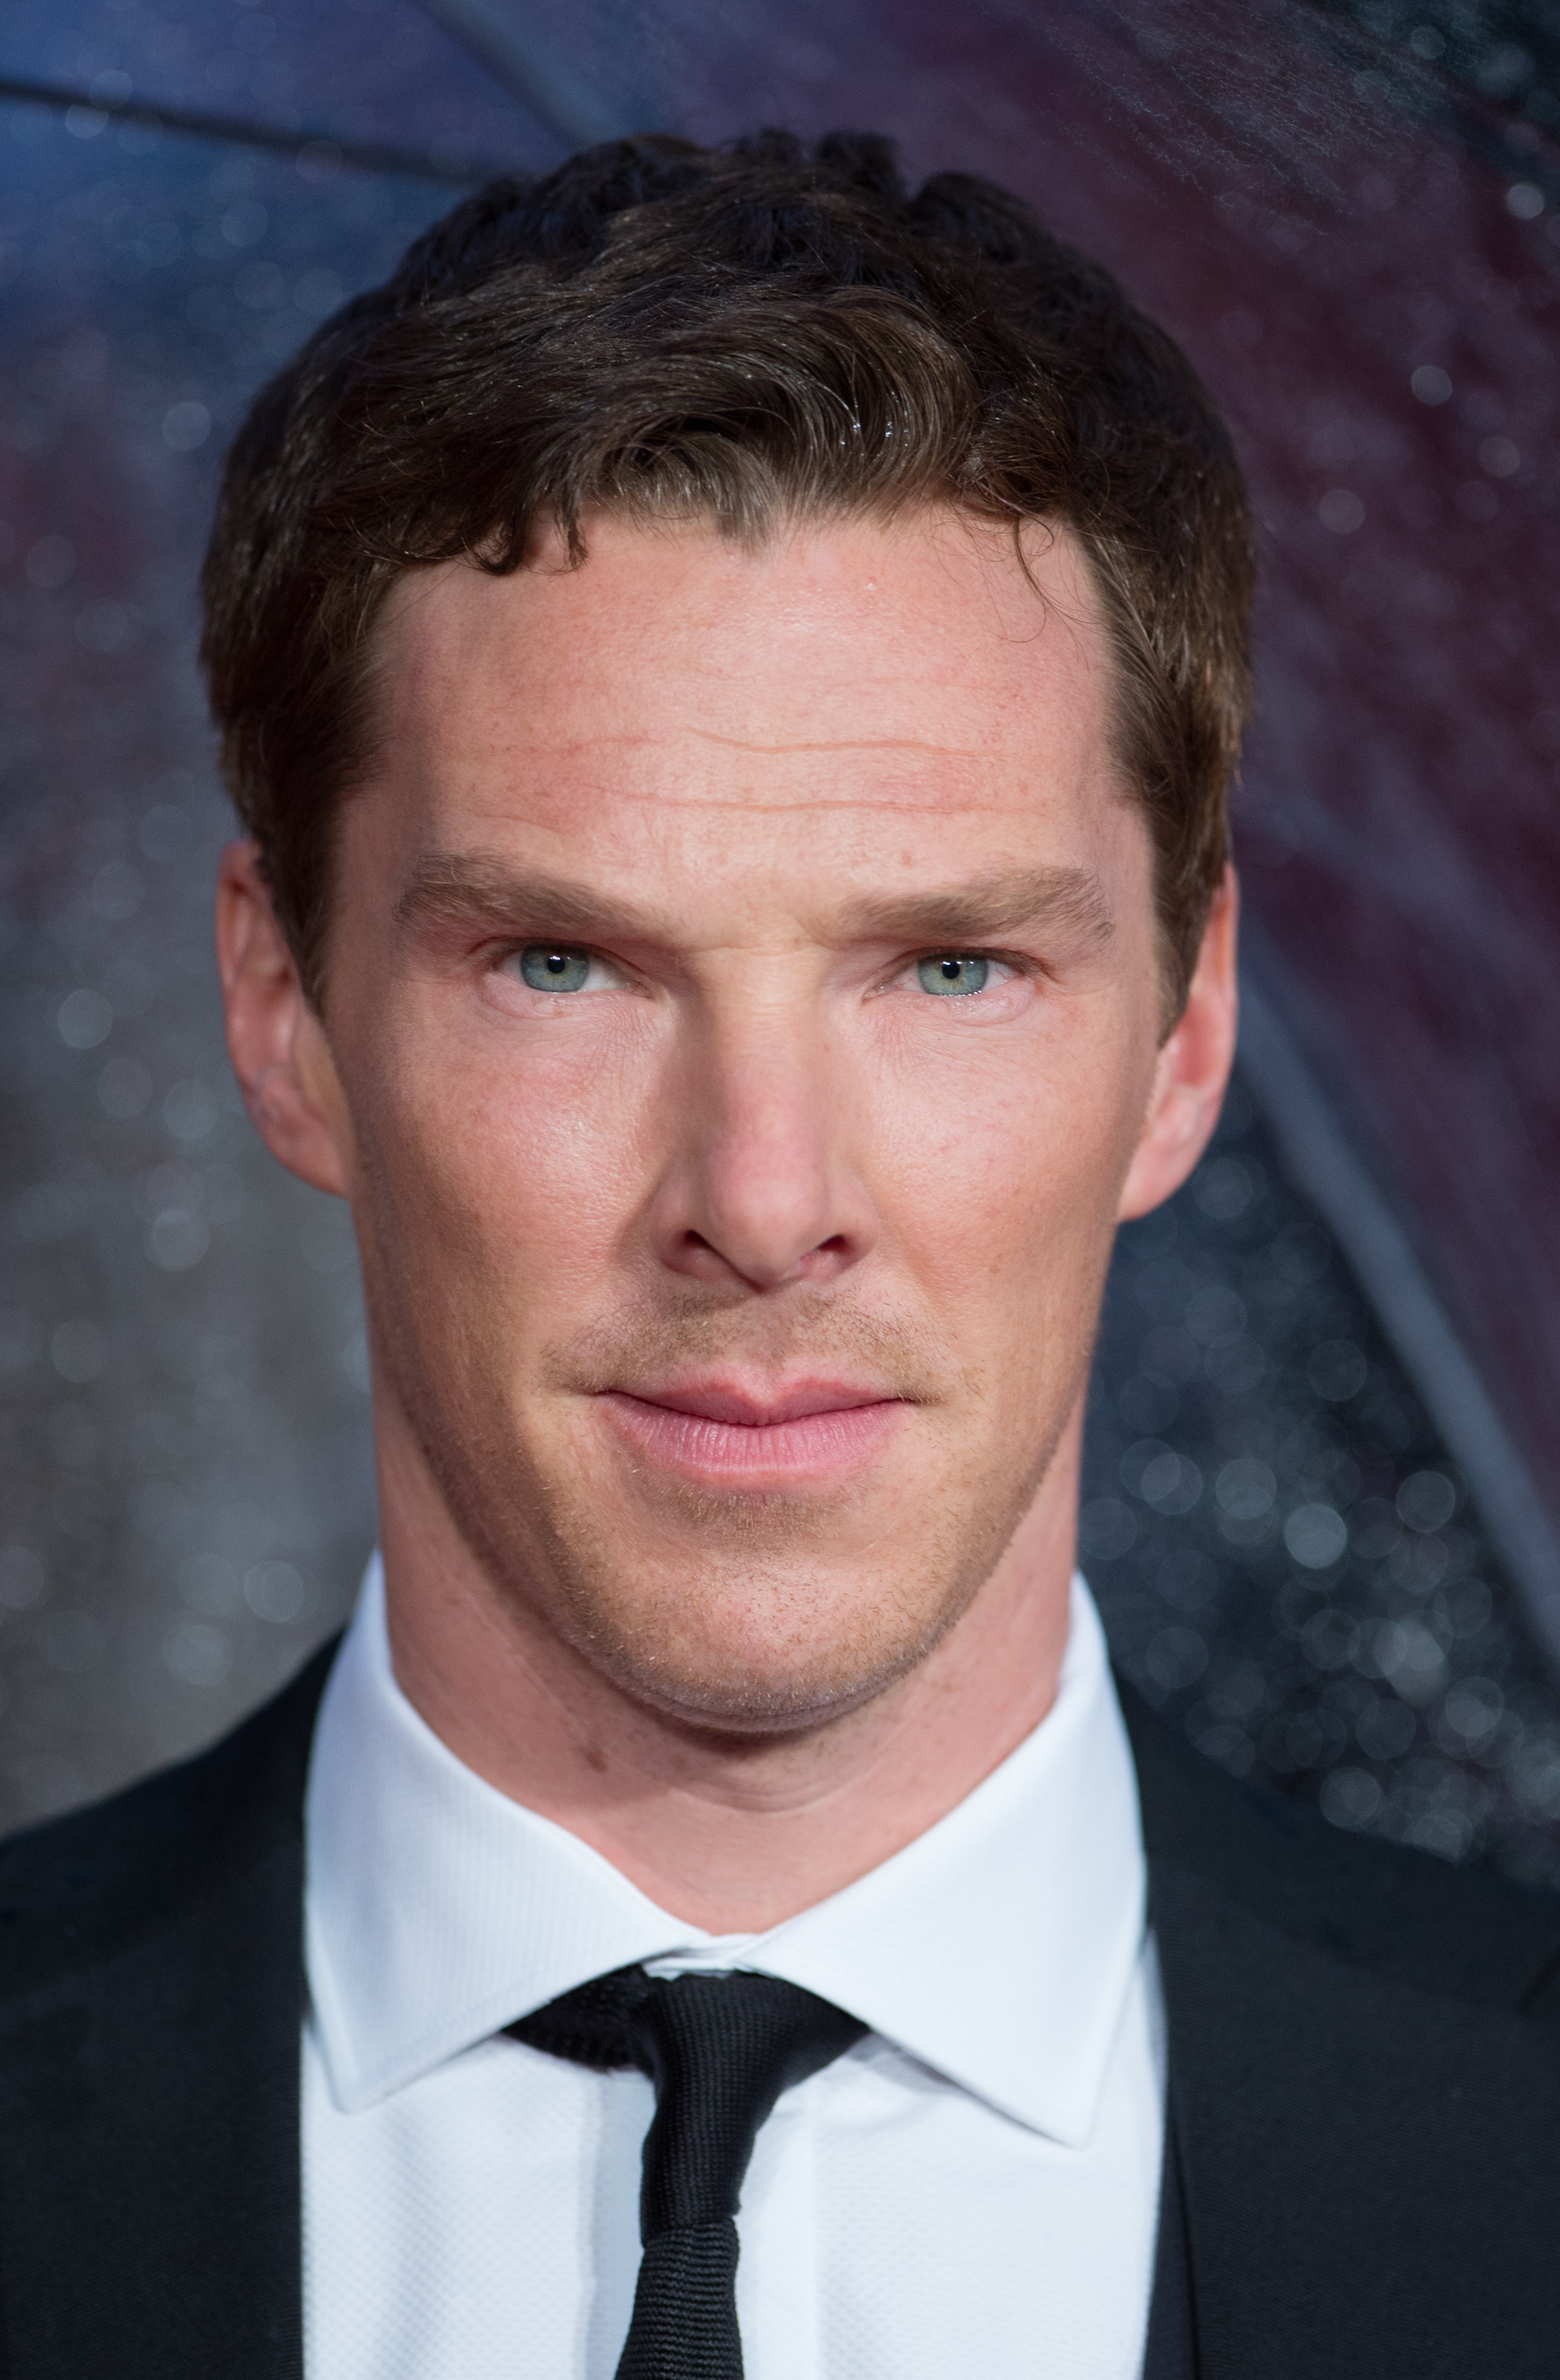 Benedict Cumberbatch attends a screening of  The Imitation Game  on the opening night gala of the 58th BFI London Film Festival at Odeon Leicester Square on October 8, 2014 in London, England.